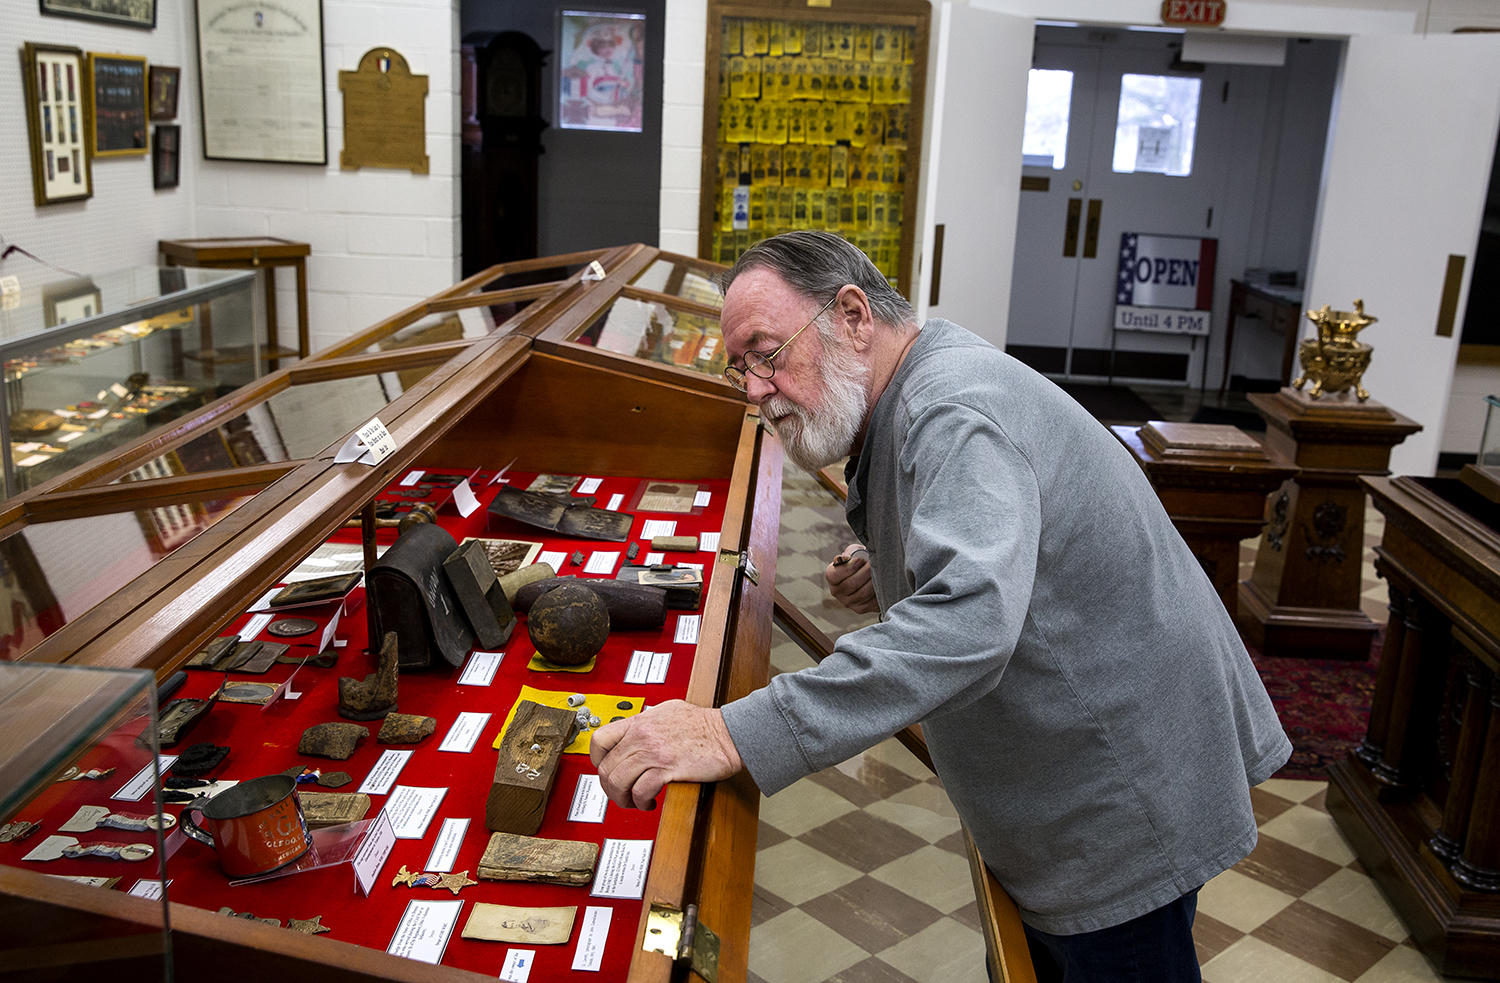 Chuck Hill, curator of the Grand Army of the Republic Memorial Museum, places notes in a case Tuesday, April 3, 2018 at the museum in Springfield, Ill. [Rich Saal/The State Journal-Register]